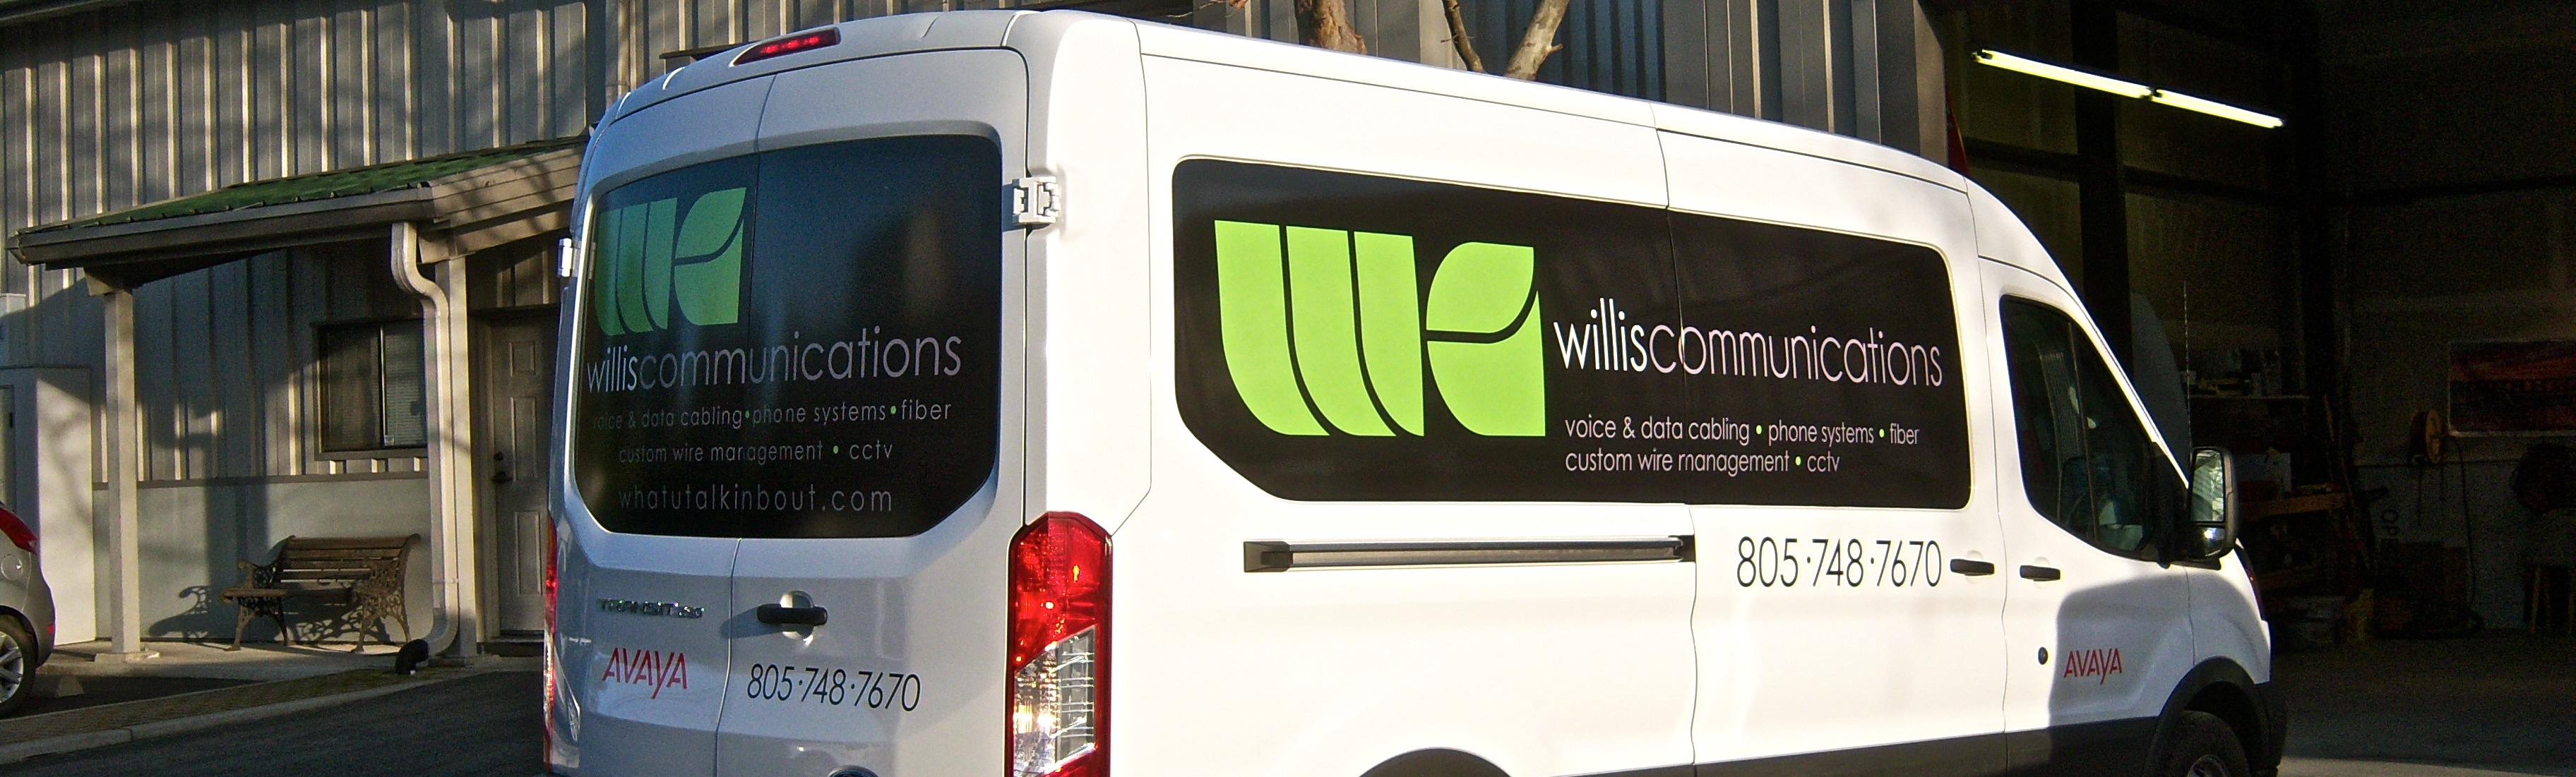 Willis-Communications-1920x580